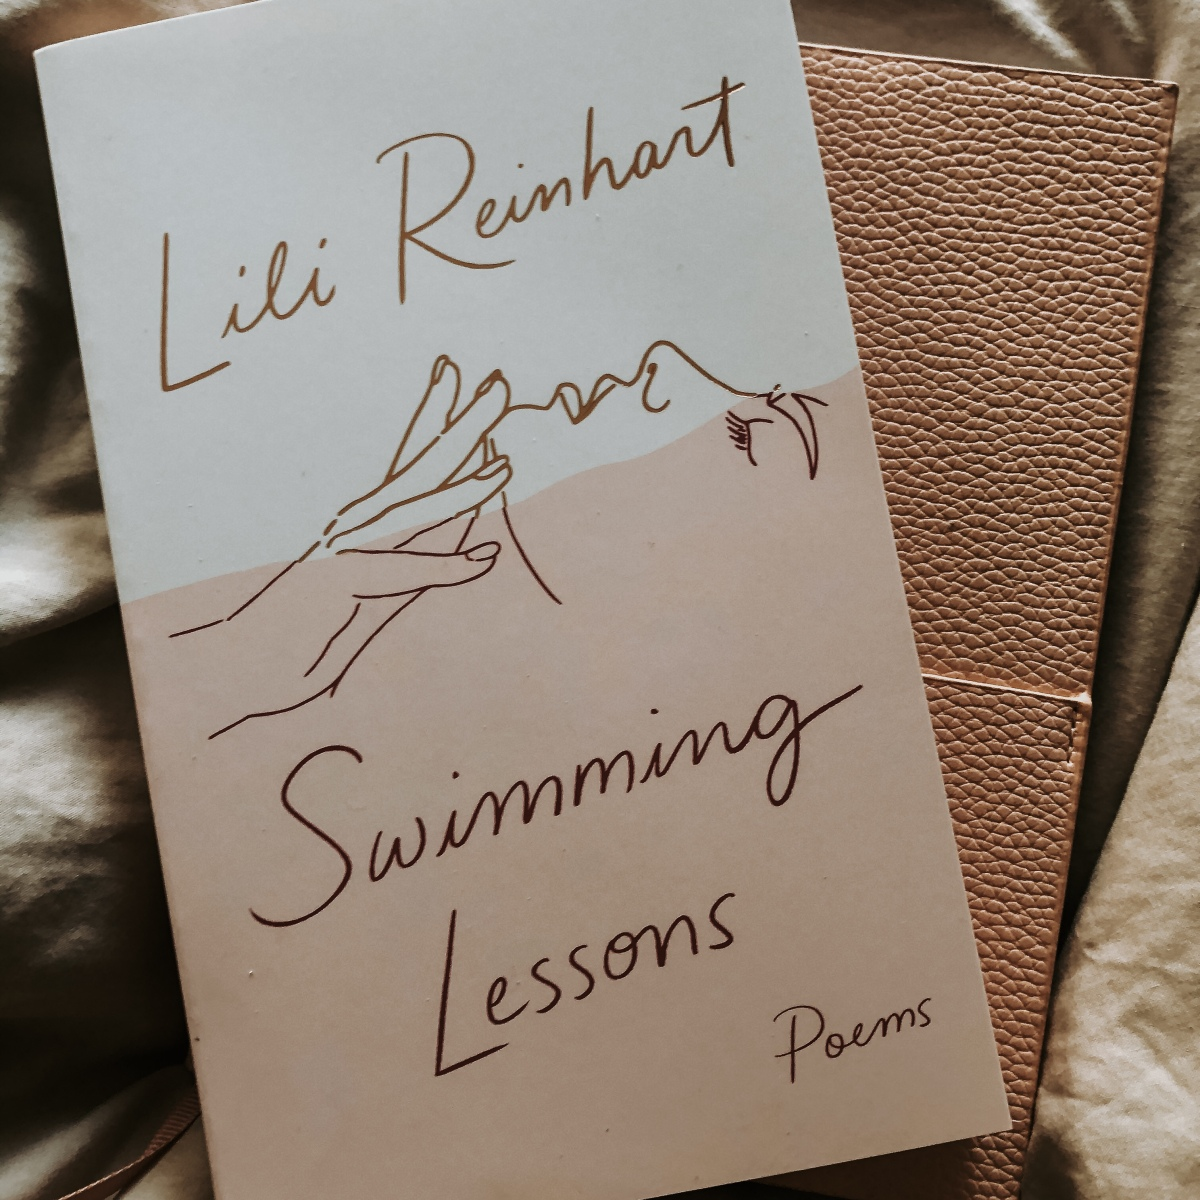 Book Cover of Swimming Lessons: Poems